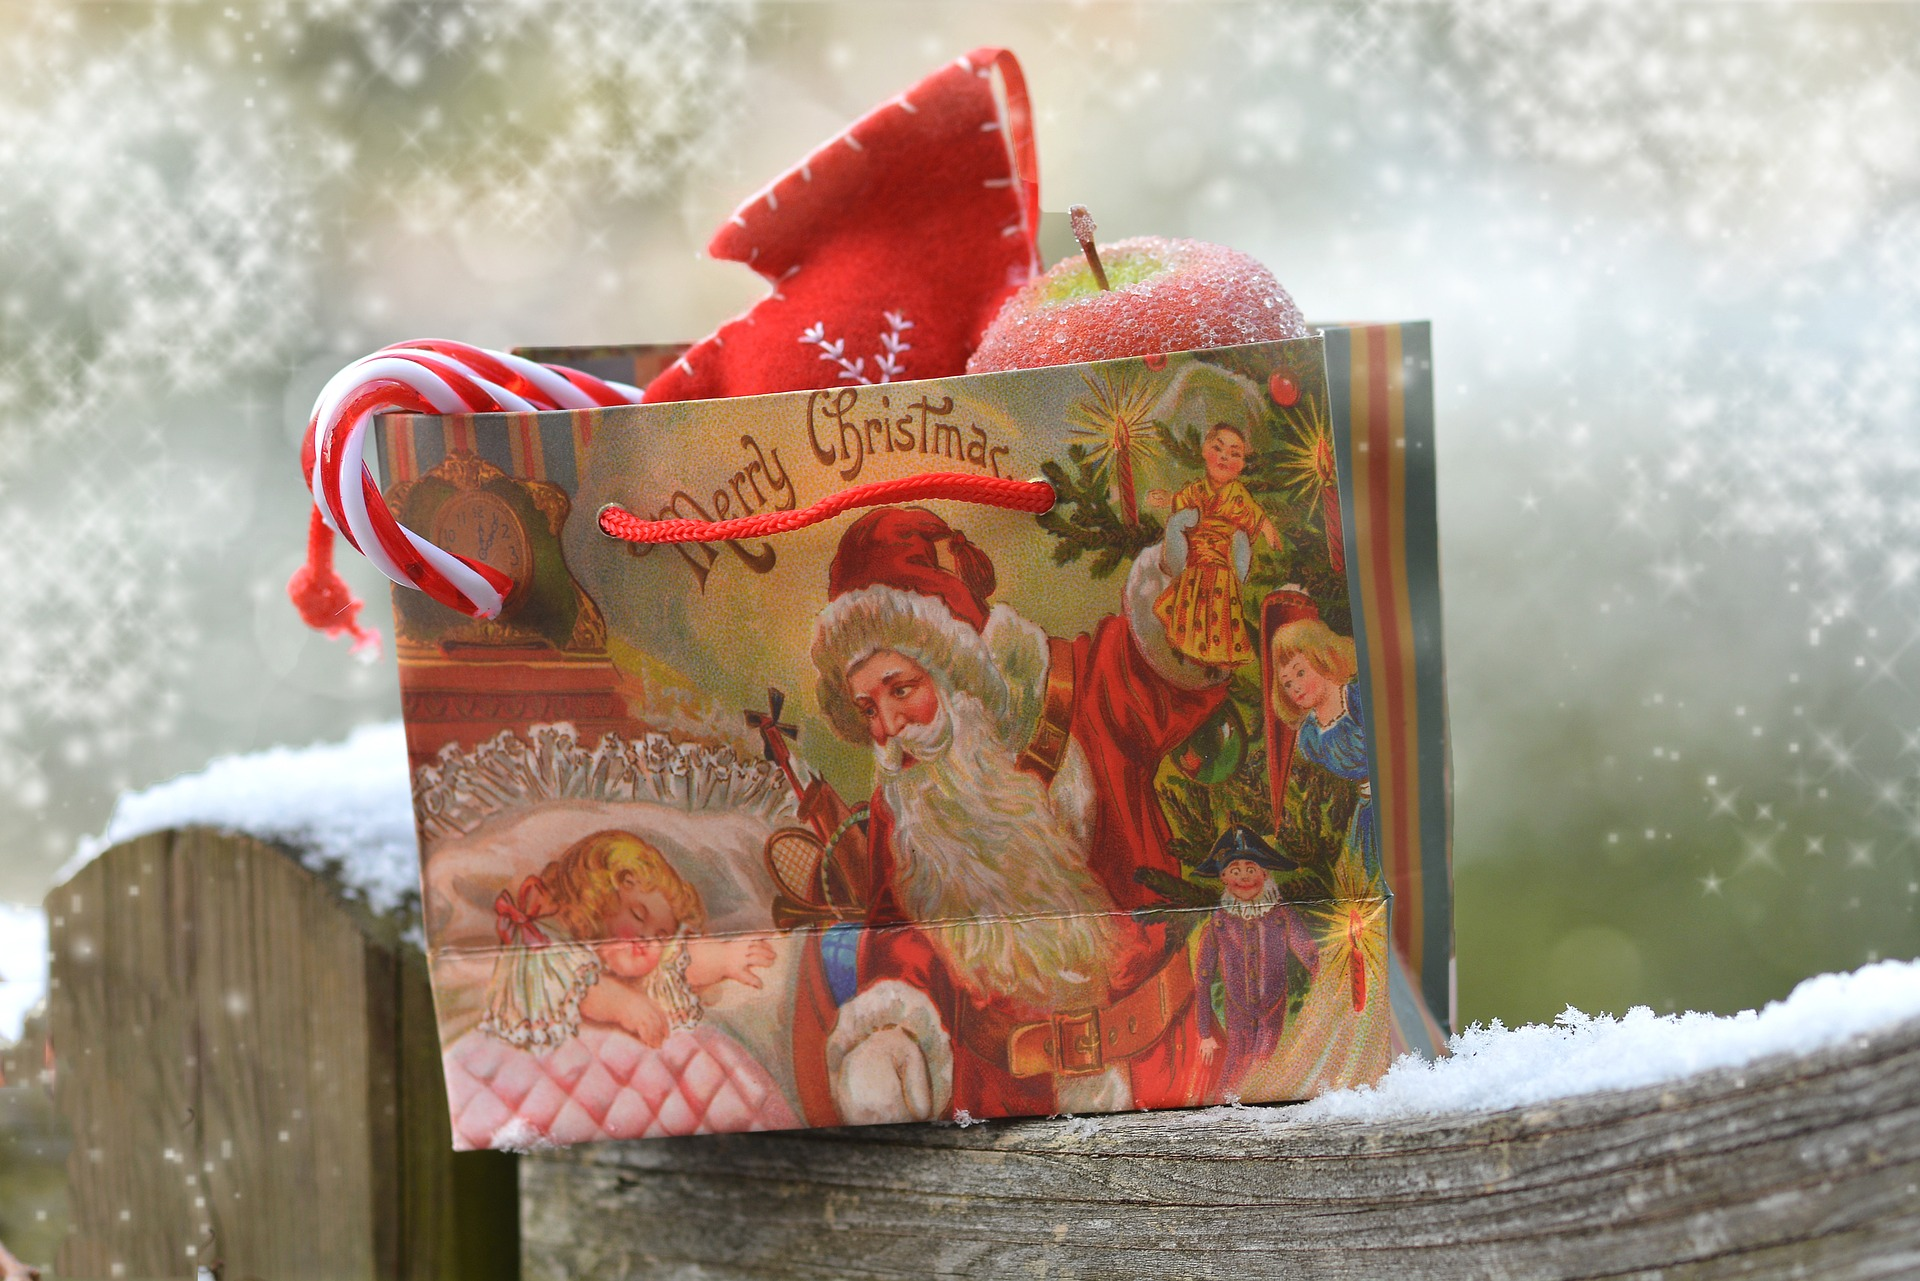 Reusing gift bags next Christmas instead of throwing them away is one simple way to reduce the amount of waste during the holiday season.